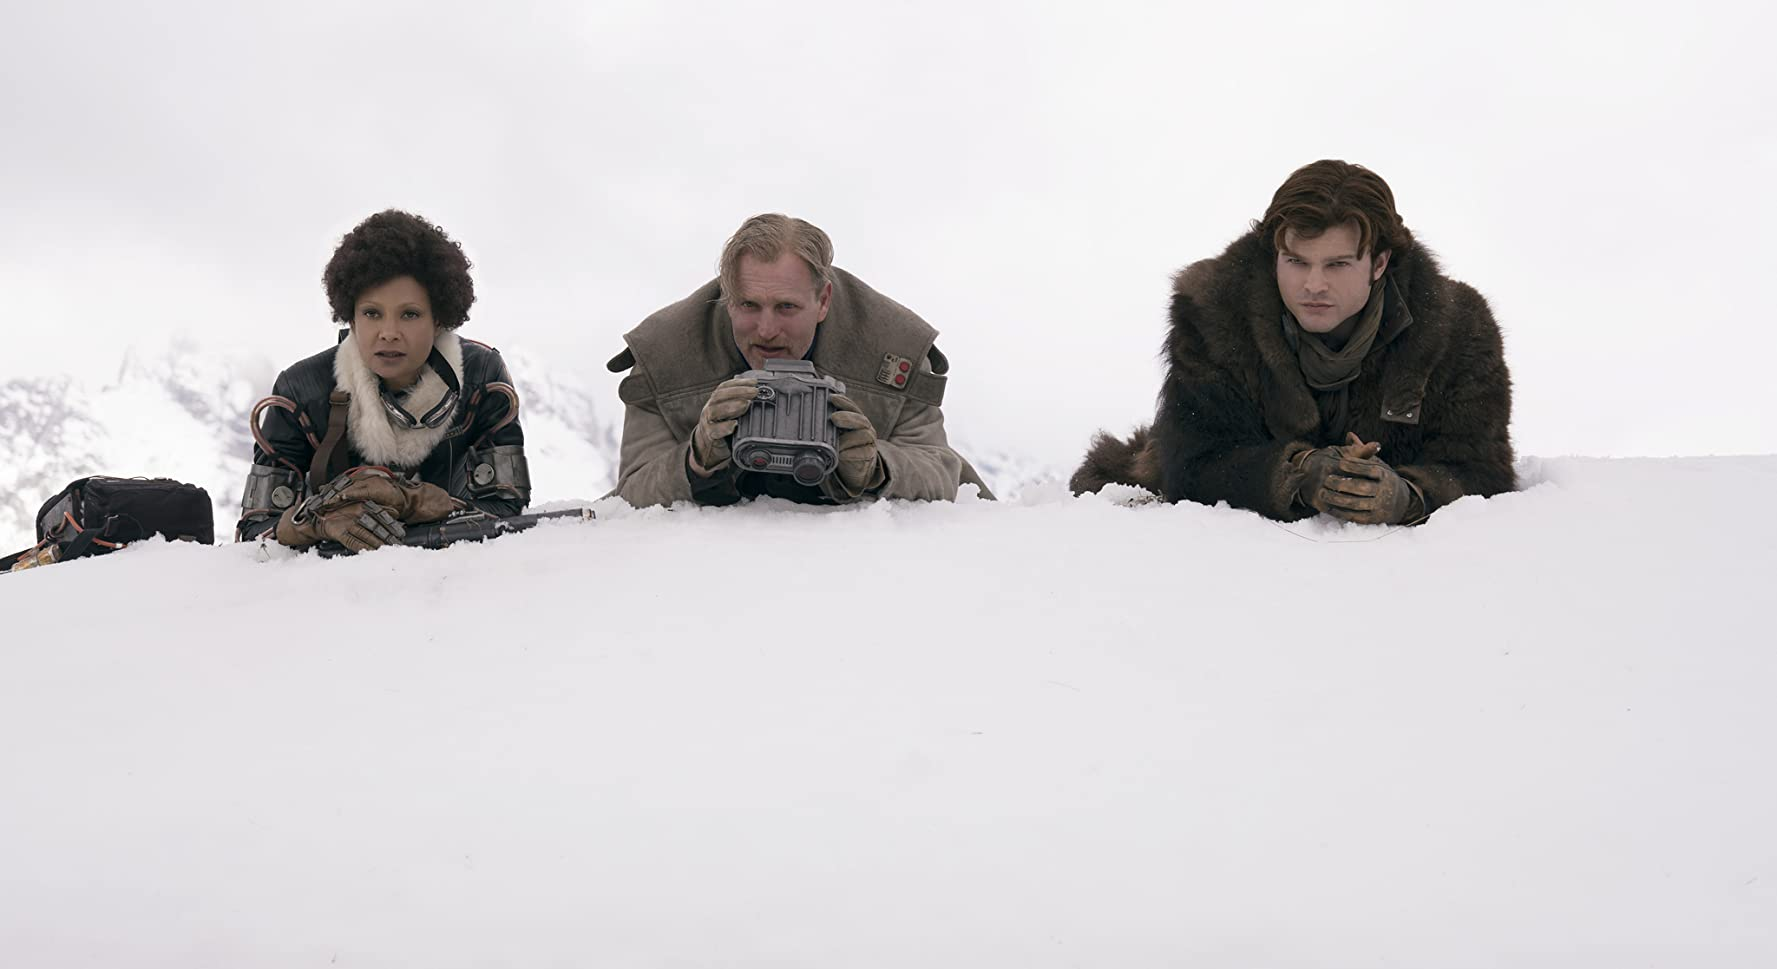 Woody Harrelson, Thandie Newton, and Alden Ehrenreich in Solo: A Star Wars Story (2018)